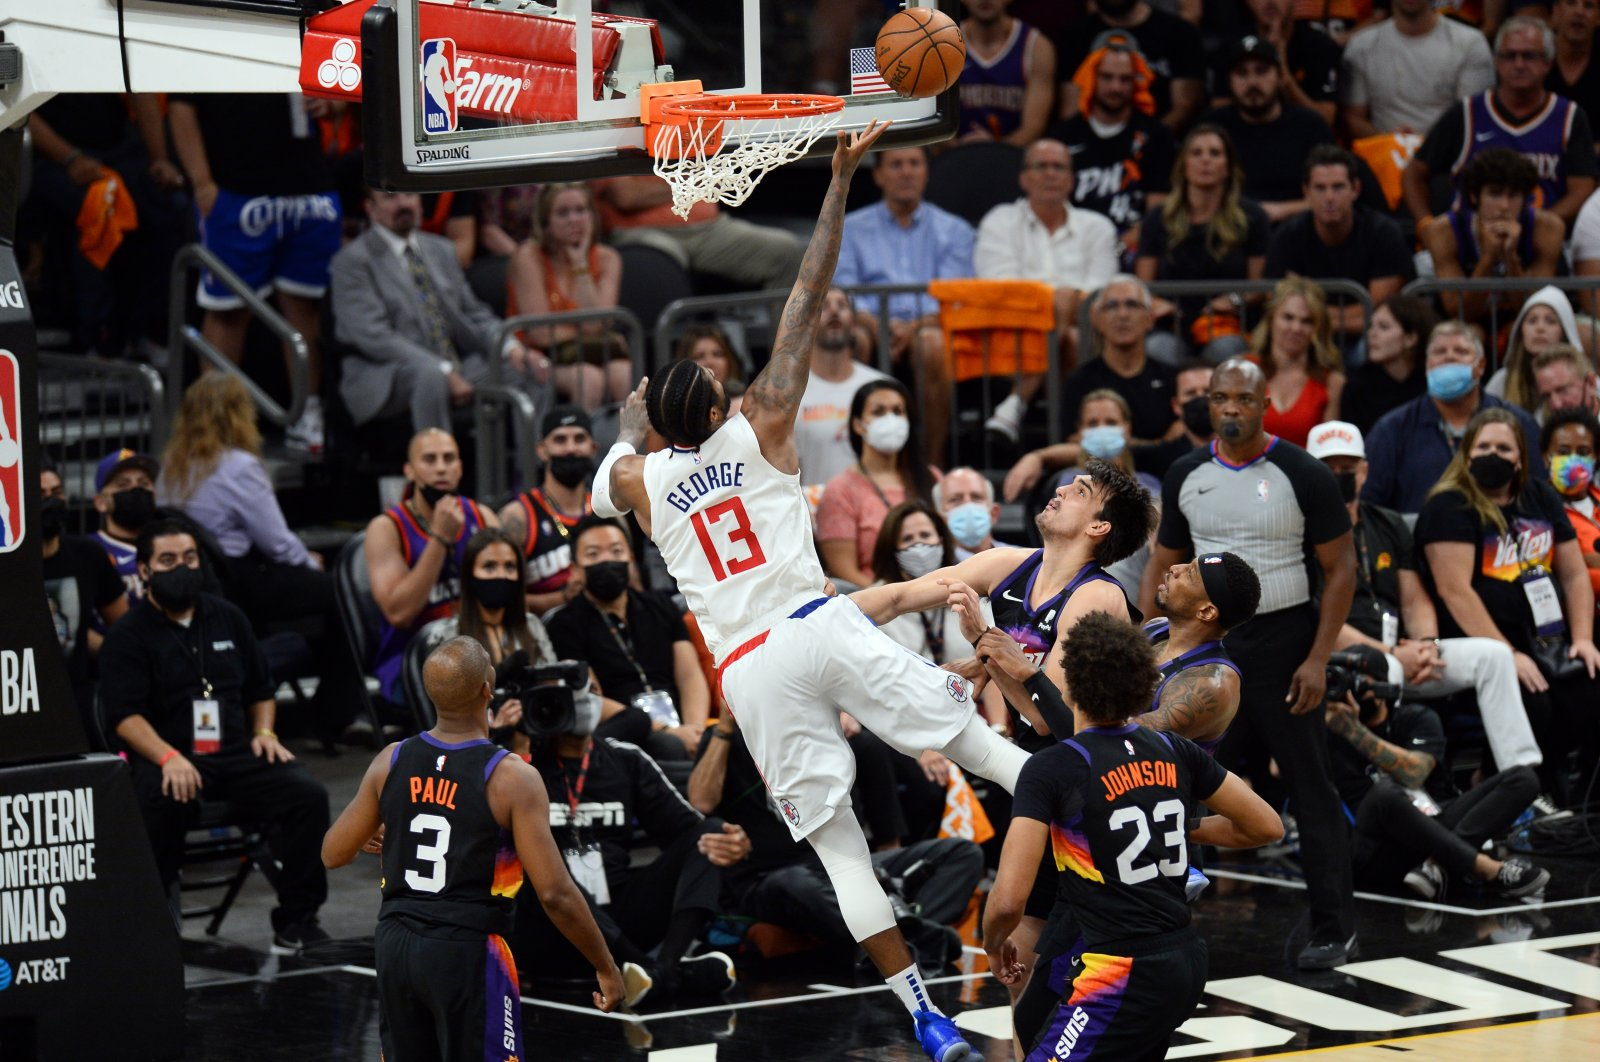 LA Clippers guard Paul George (C) puts up a layup against the Phoenix Suns during the 2021 NBA Playoffs Western Conference Finals Game 5 at Phoenix Suns Arena, Arizona, U.S., June 28, 2021.